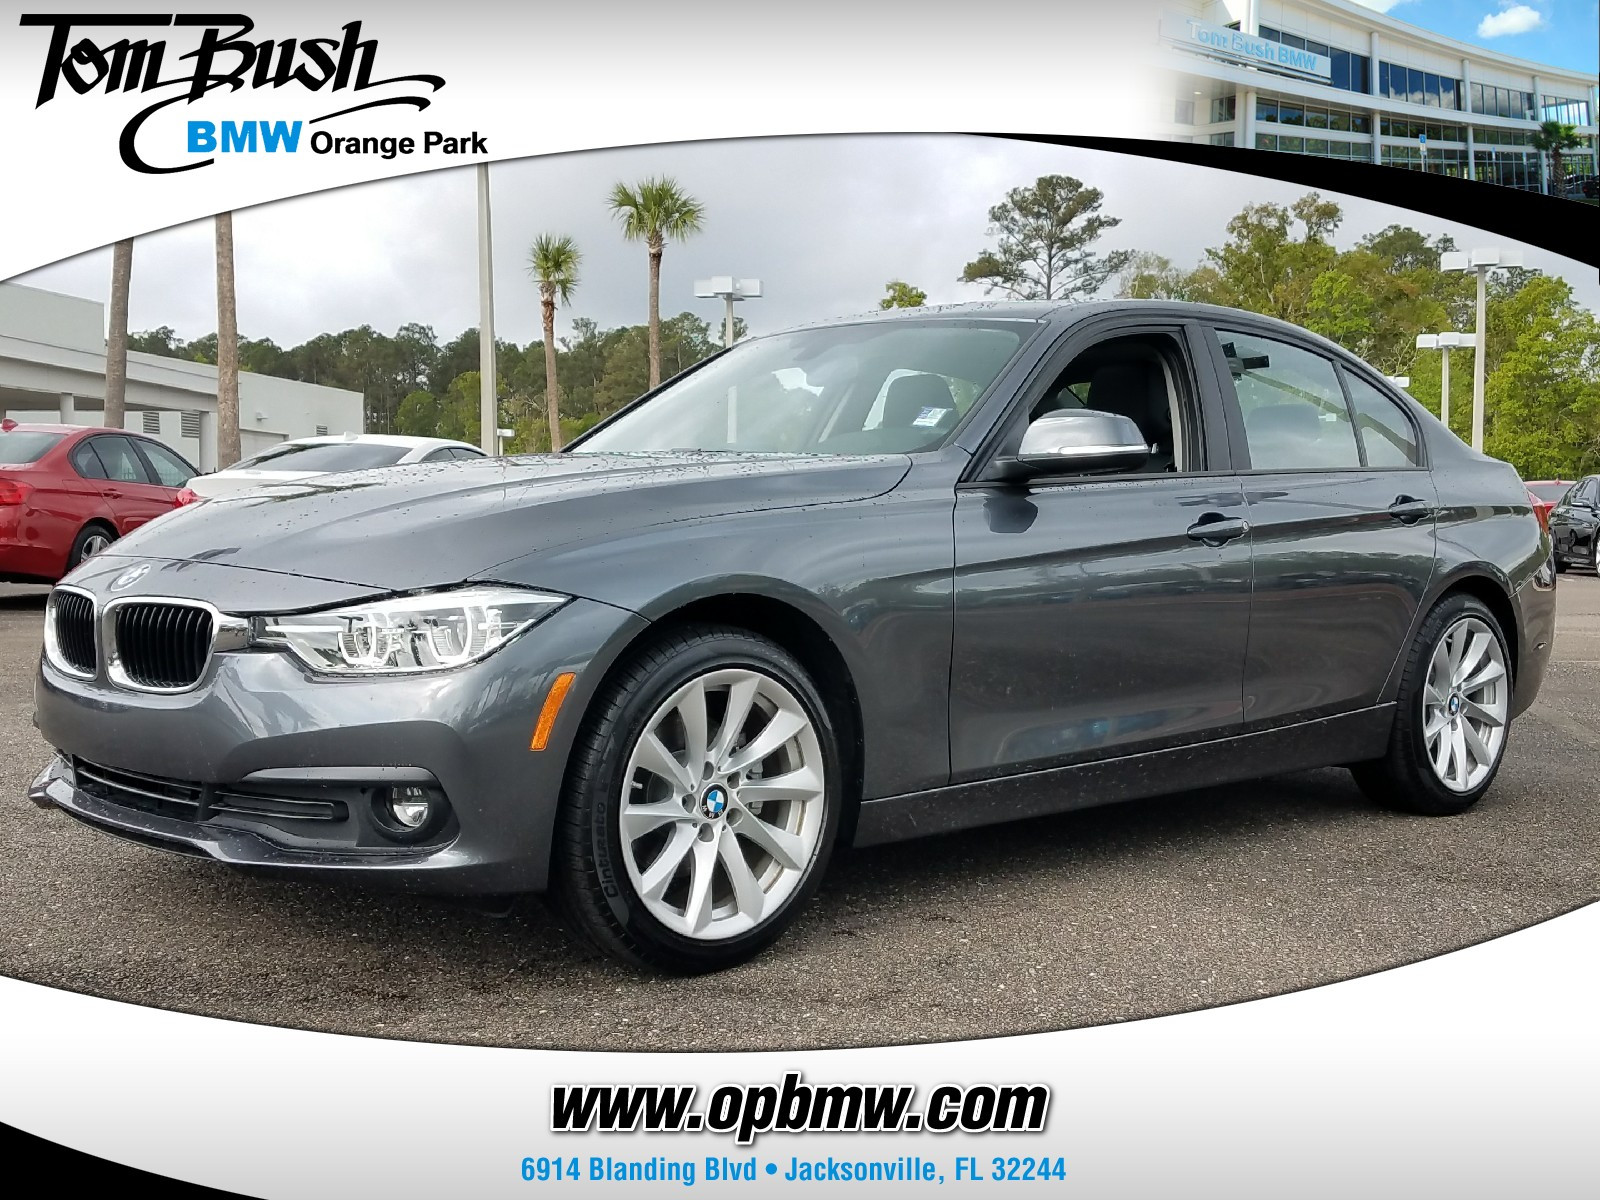 Used Cars Jacksonville Unique Used Cars for Sale Jacksonville Fl Unique Used 2018 Bmw 320i for